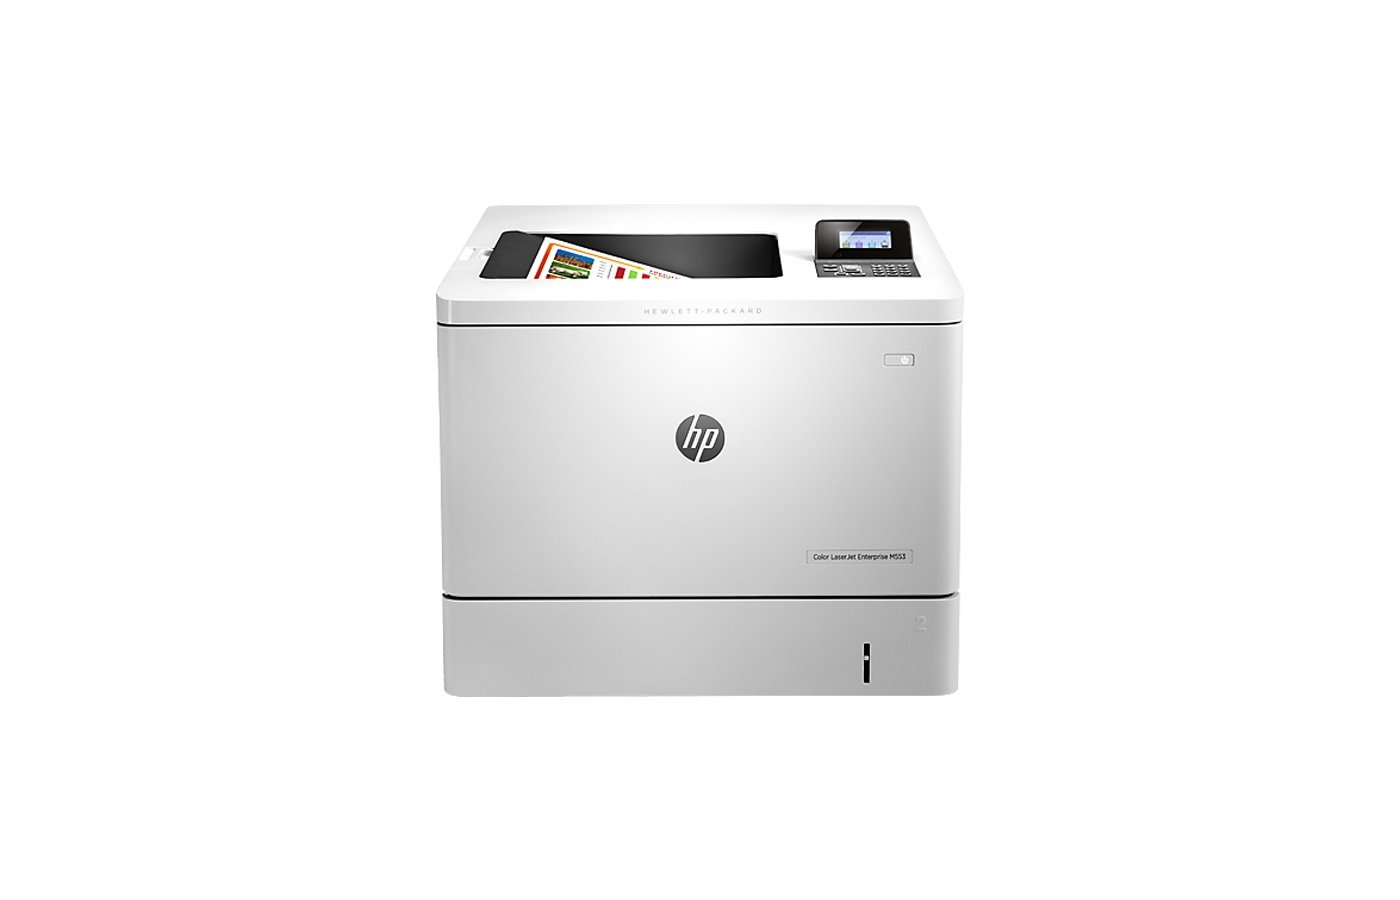 Принтер HP Color LaserJet Enterprise 500 color M553n /B5L24A/